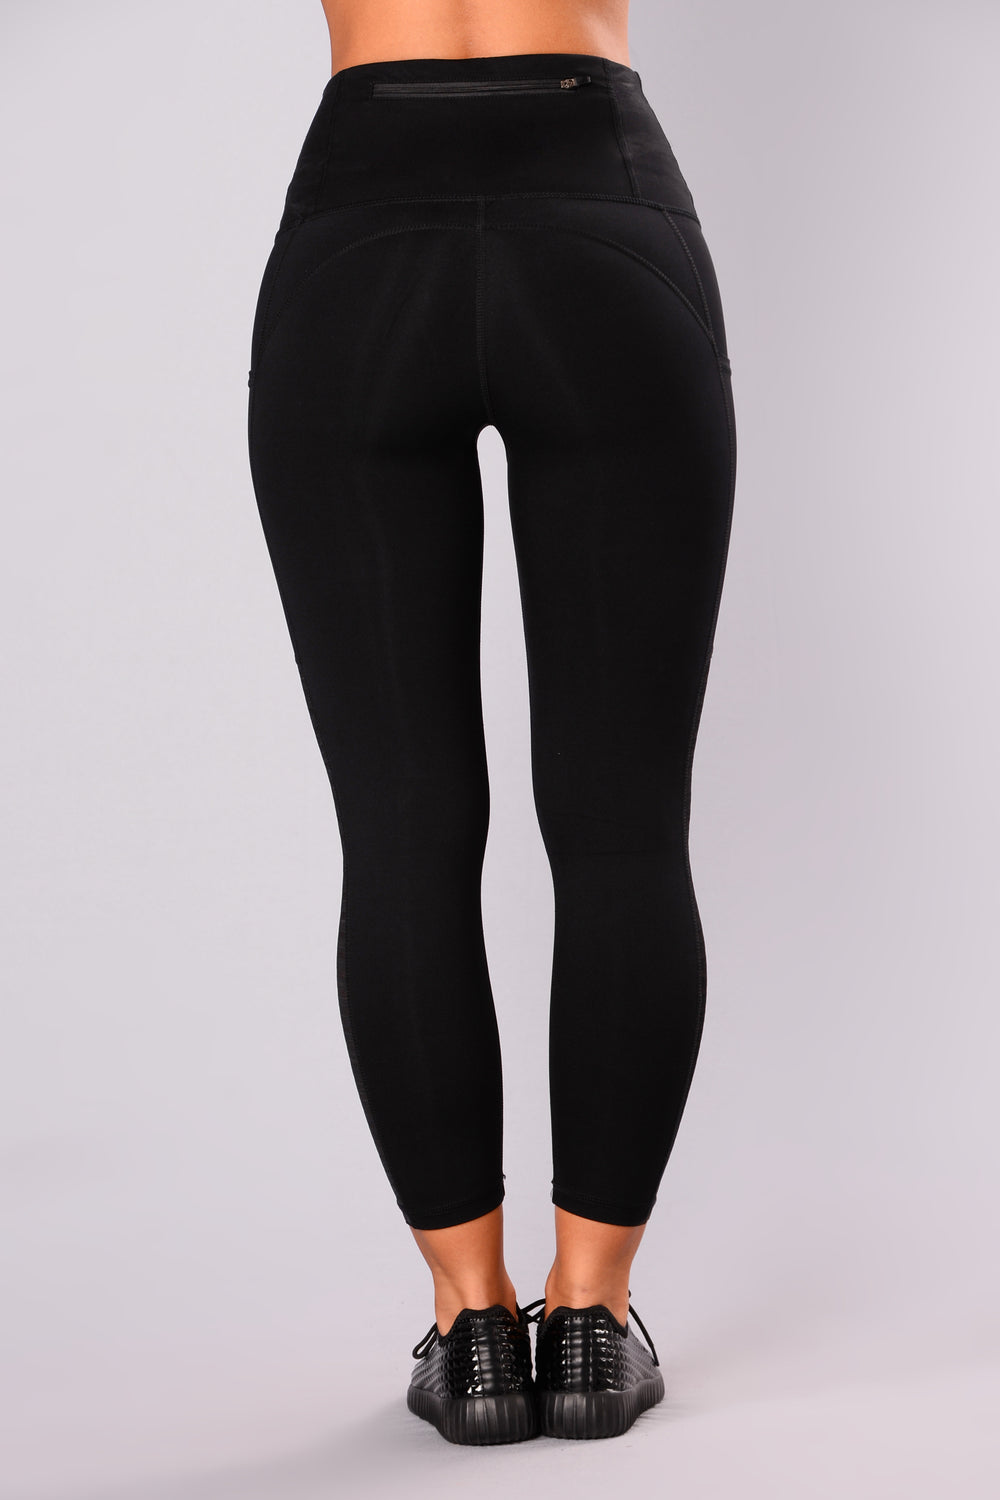 Obstacle Course Mesh Active Leggings - Black